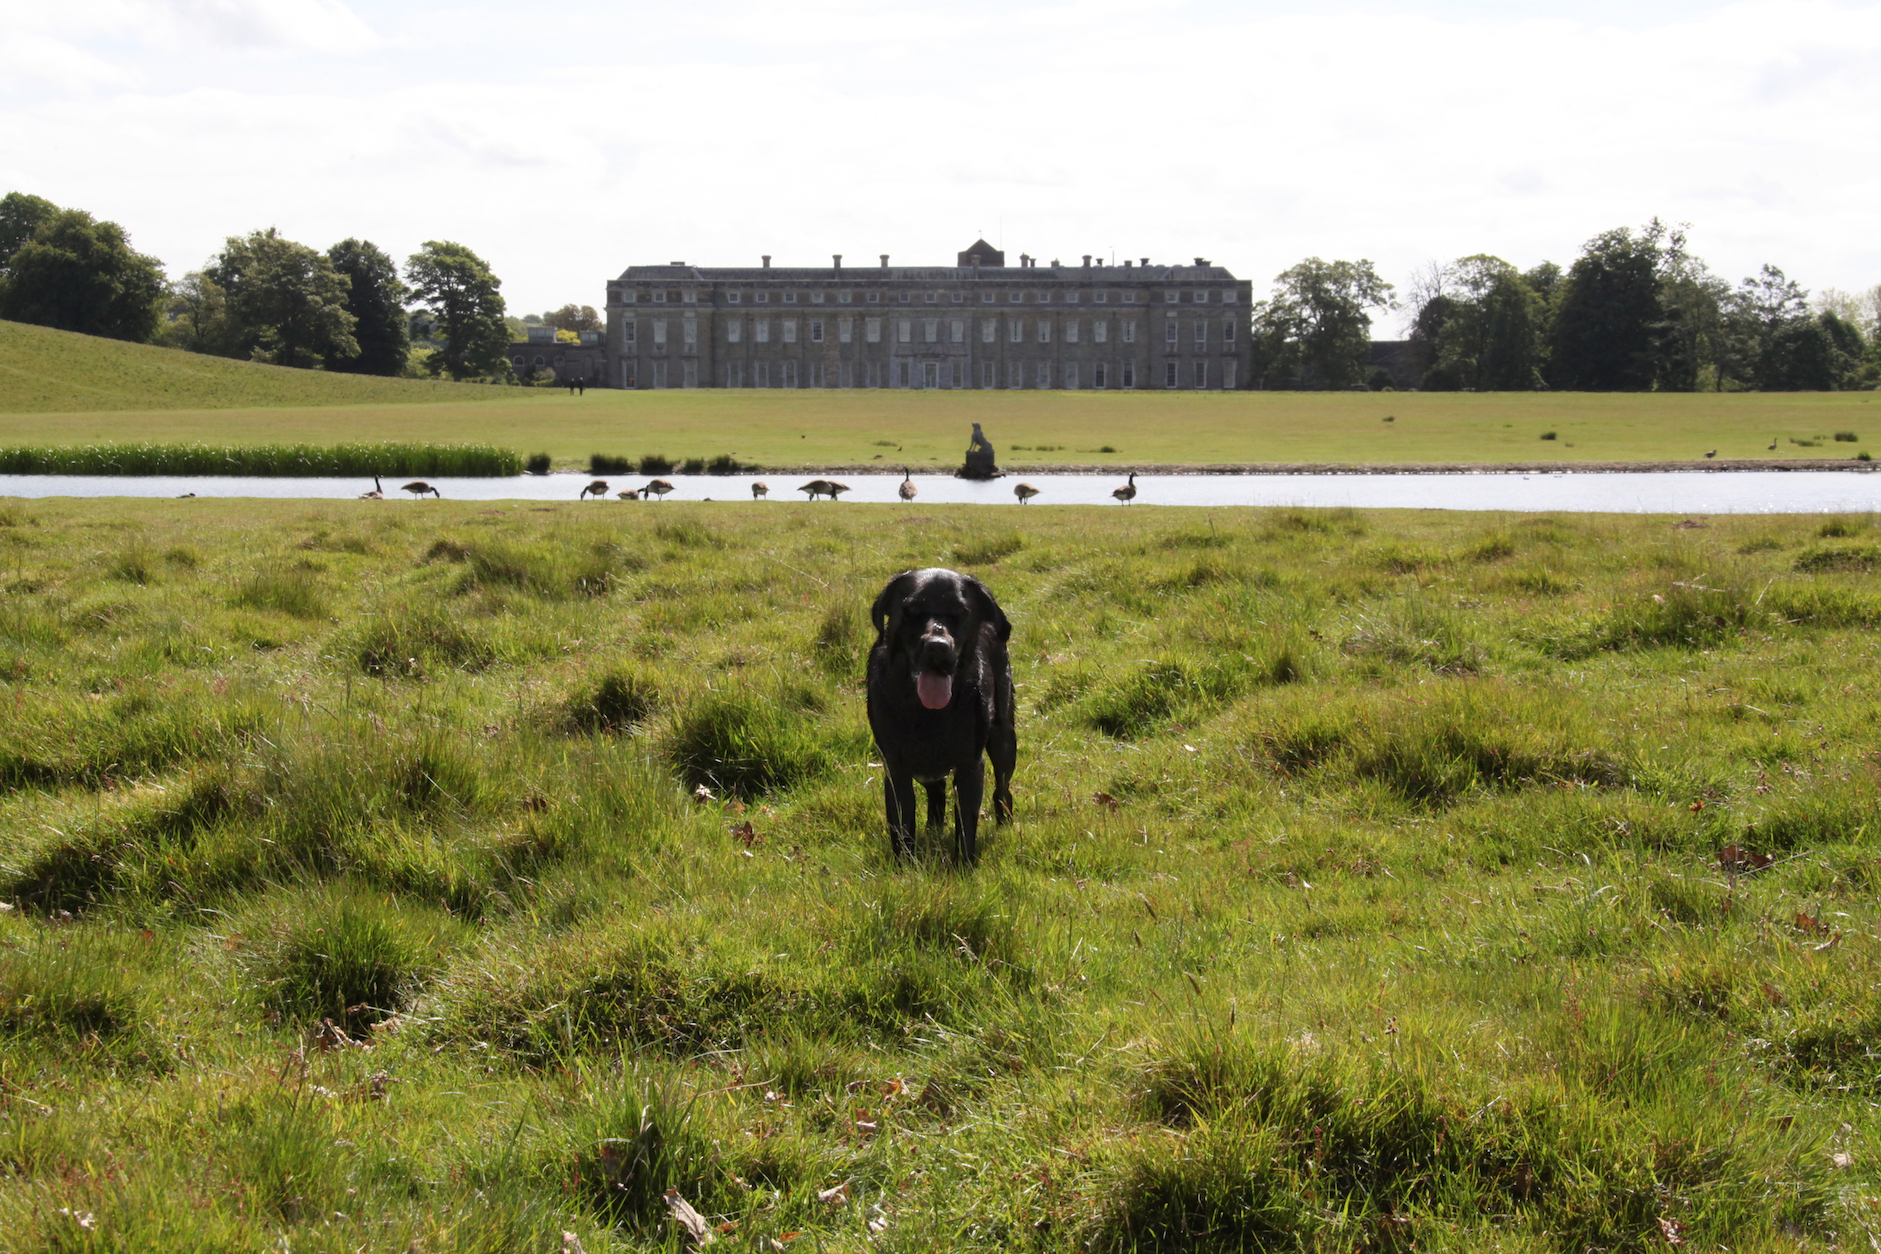 That is one big house! - How many dogs live in it?